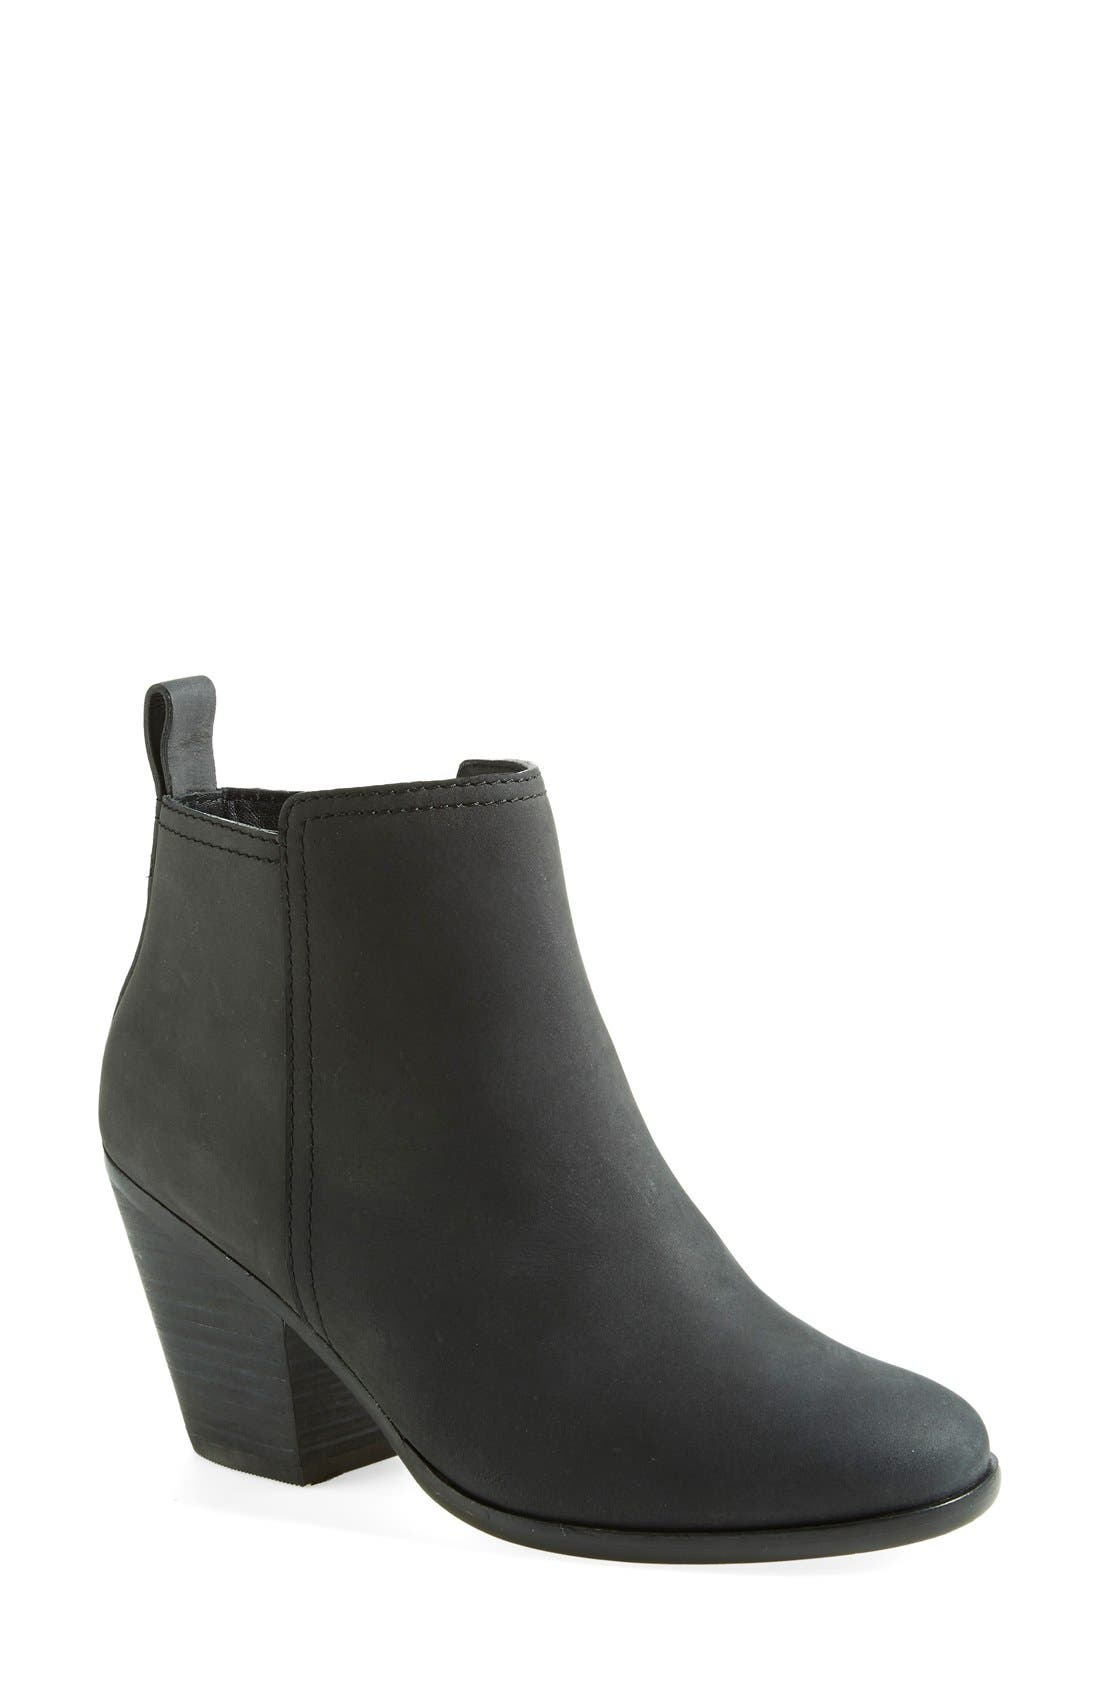 COLE HAAN,                             'Chesney' Round Toe Bootie,                             Main thumbnail 1, color,                             001